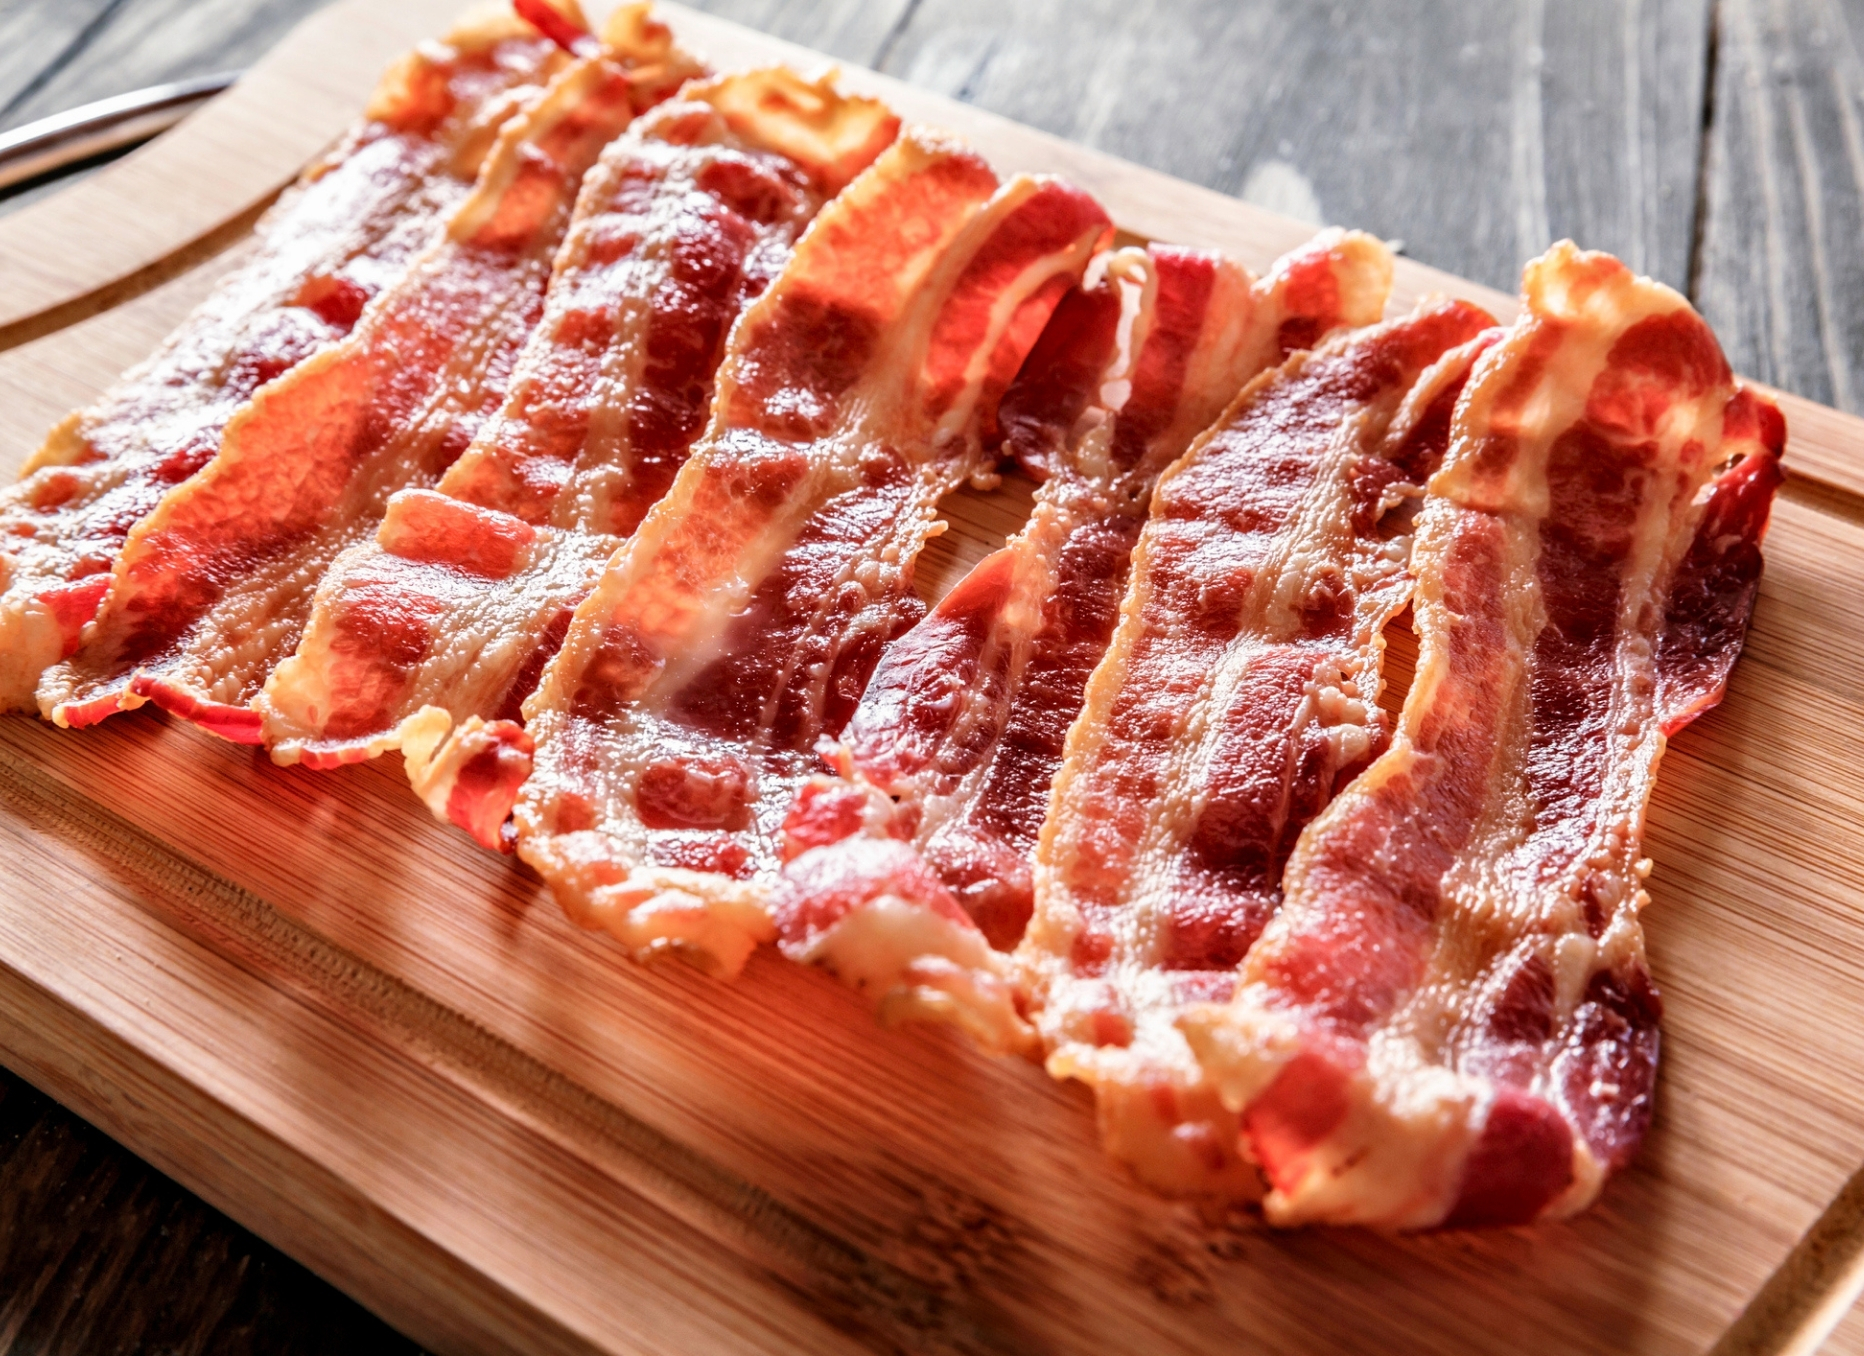 Bacon on a Cutting Board